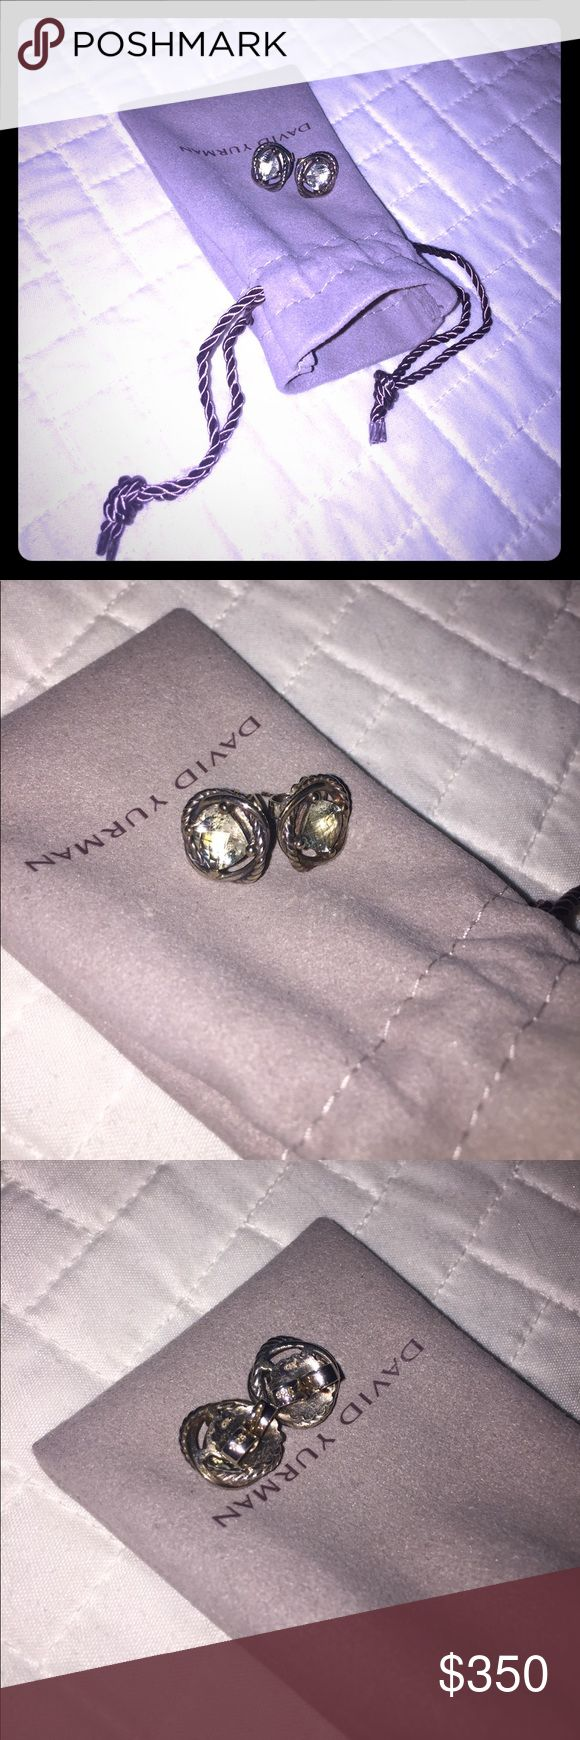 💯DAVID YURMAN 925 SILVER INFINITY EARRINGS Excellent condition, they show minimal to no wear. Soft green prasiolite stone. David Yurman Jewelry Earrings